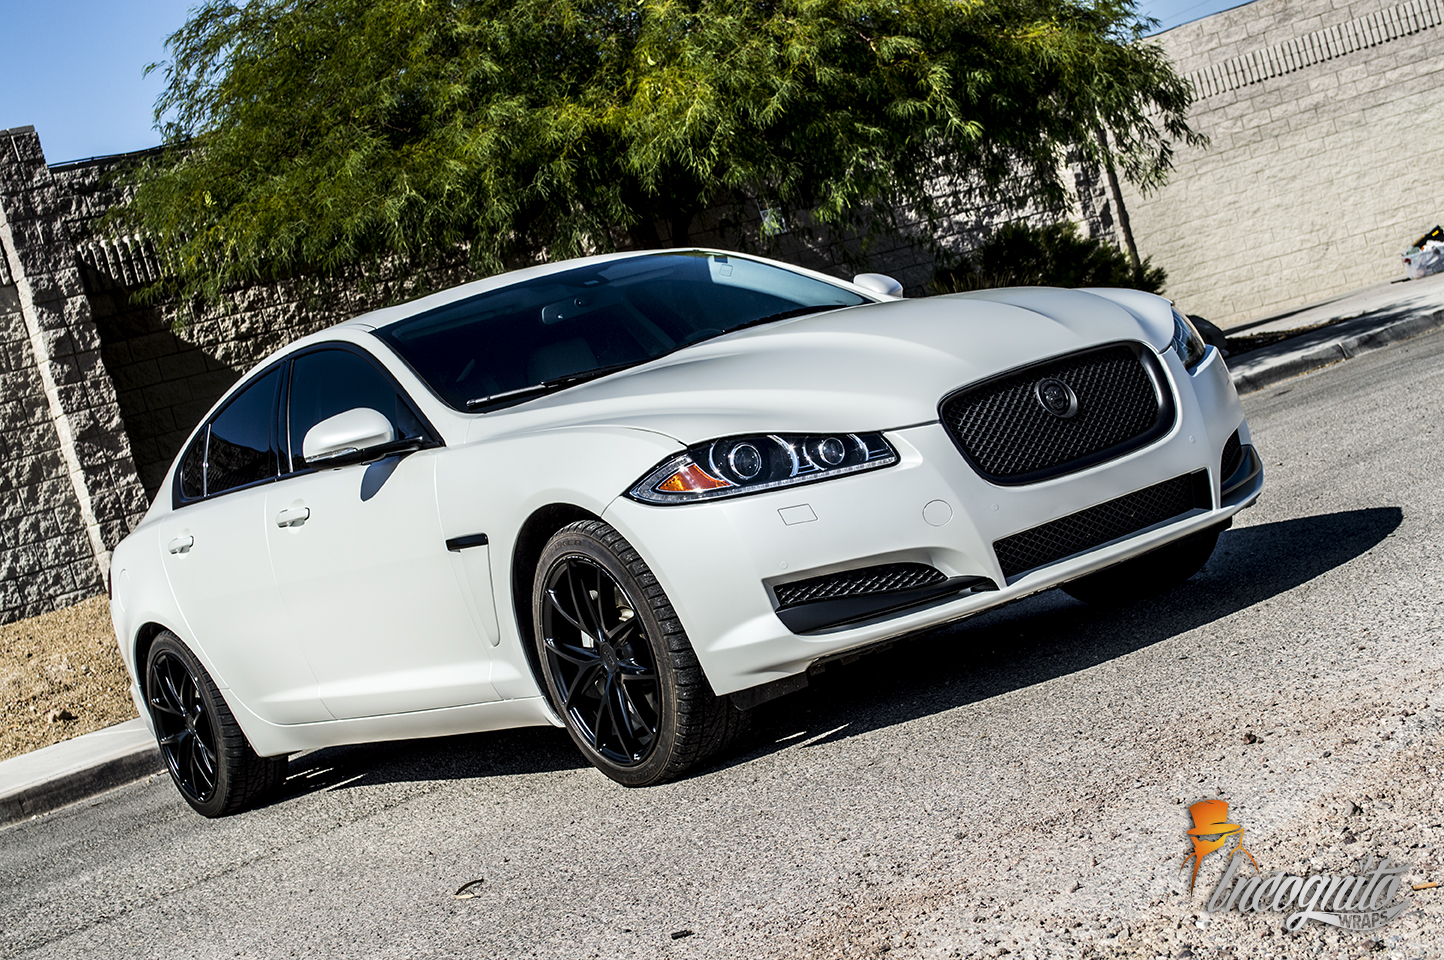 We Have Done This Combination On Many Different Vehicles And It Always  Looks Clean Aggressive. Blacked Out The Chrome Jaguar XF Wrapped ...